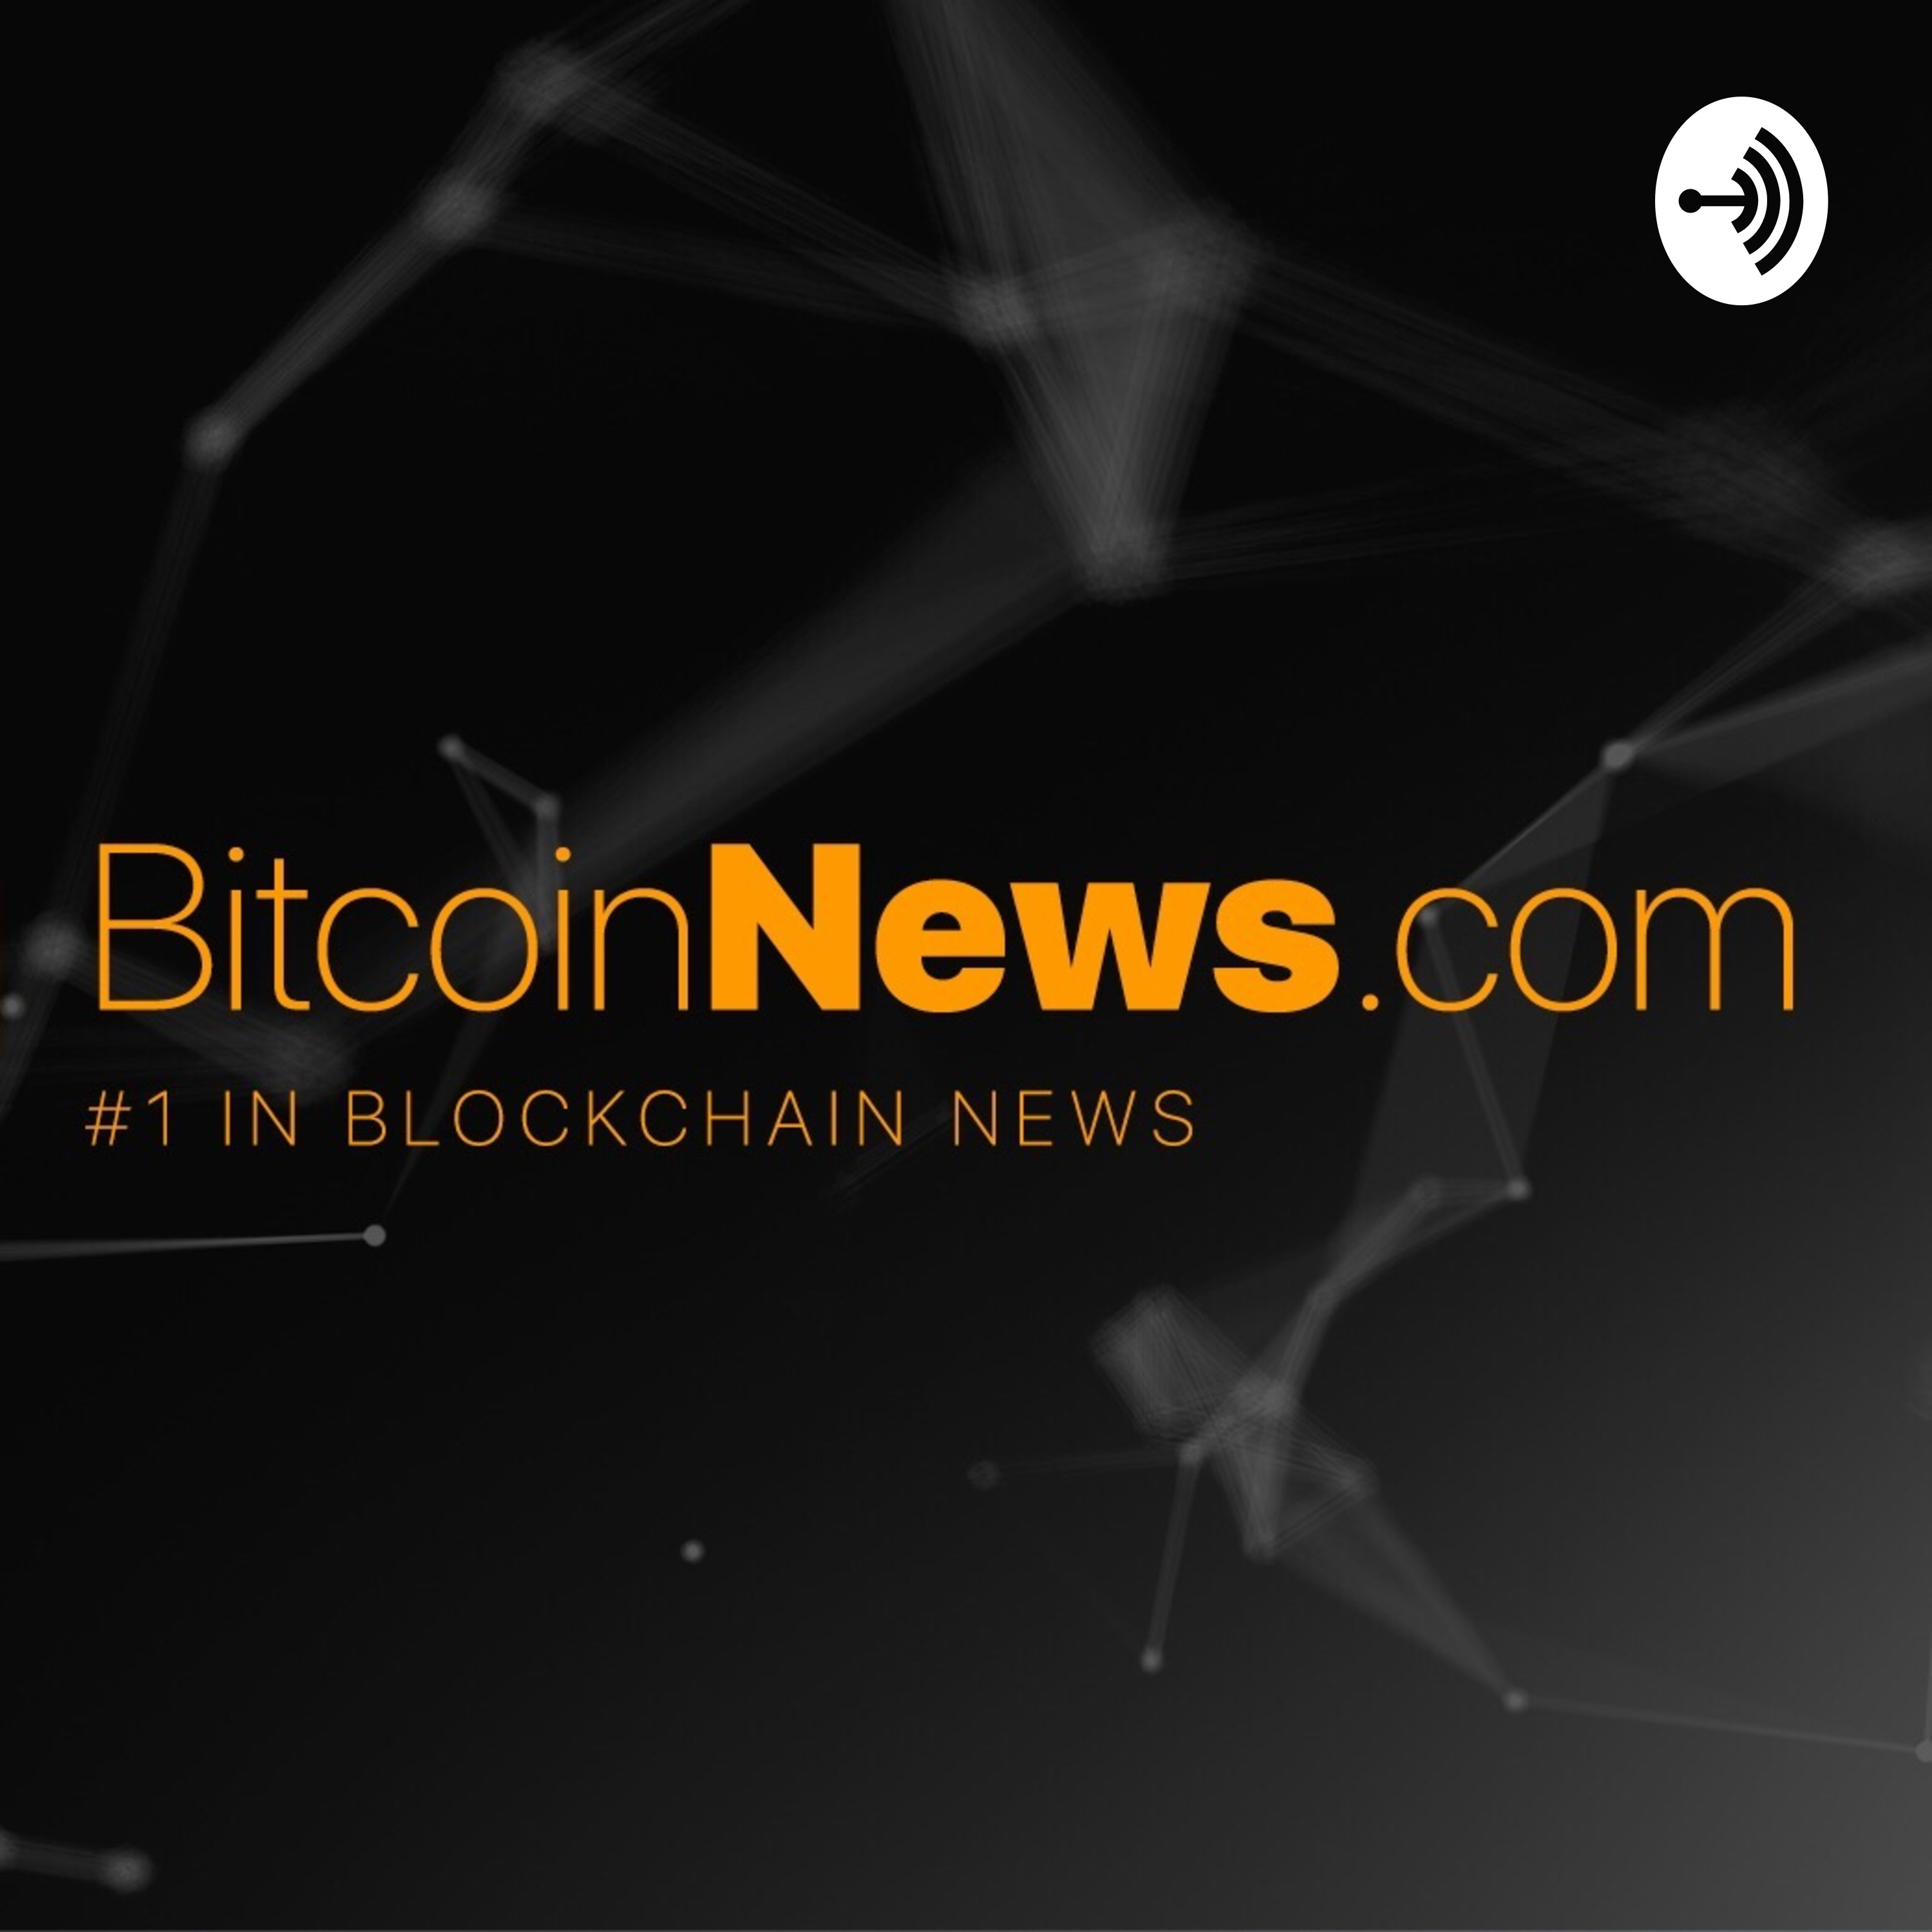 BitcoinNews.com Daily Podcast 15th January 2019: Ethereum Constantinople Hard Fork Delayed